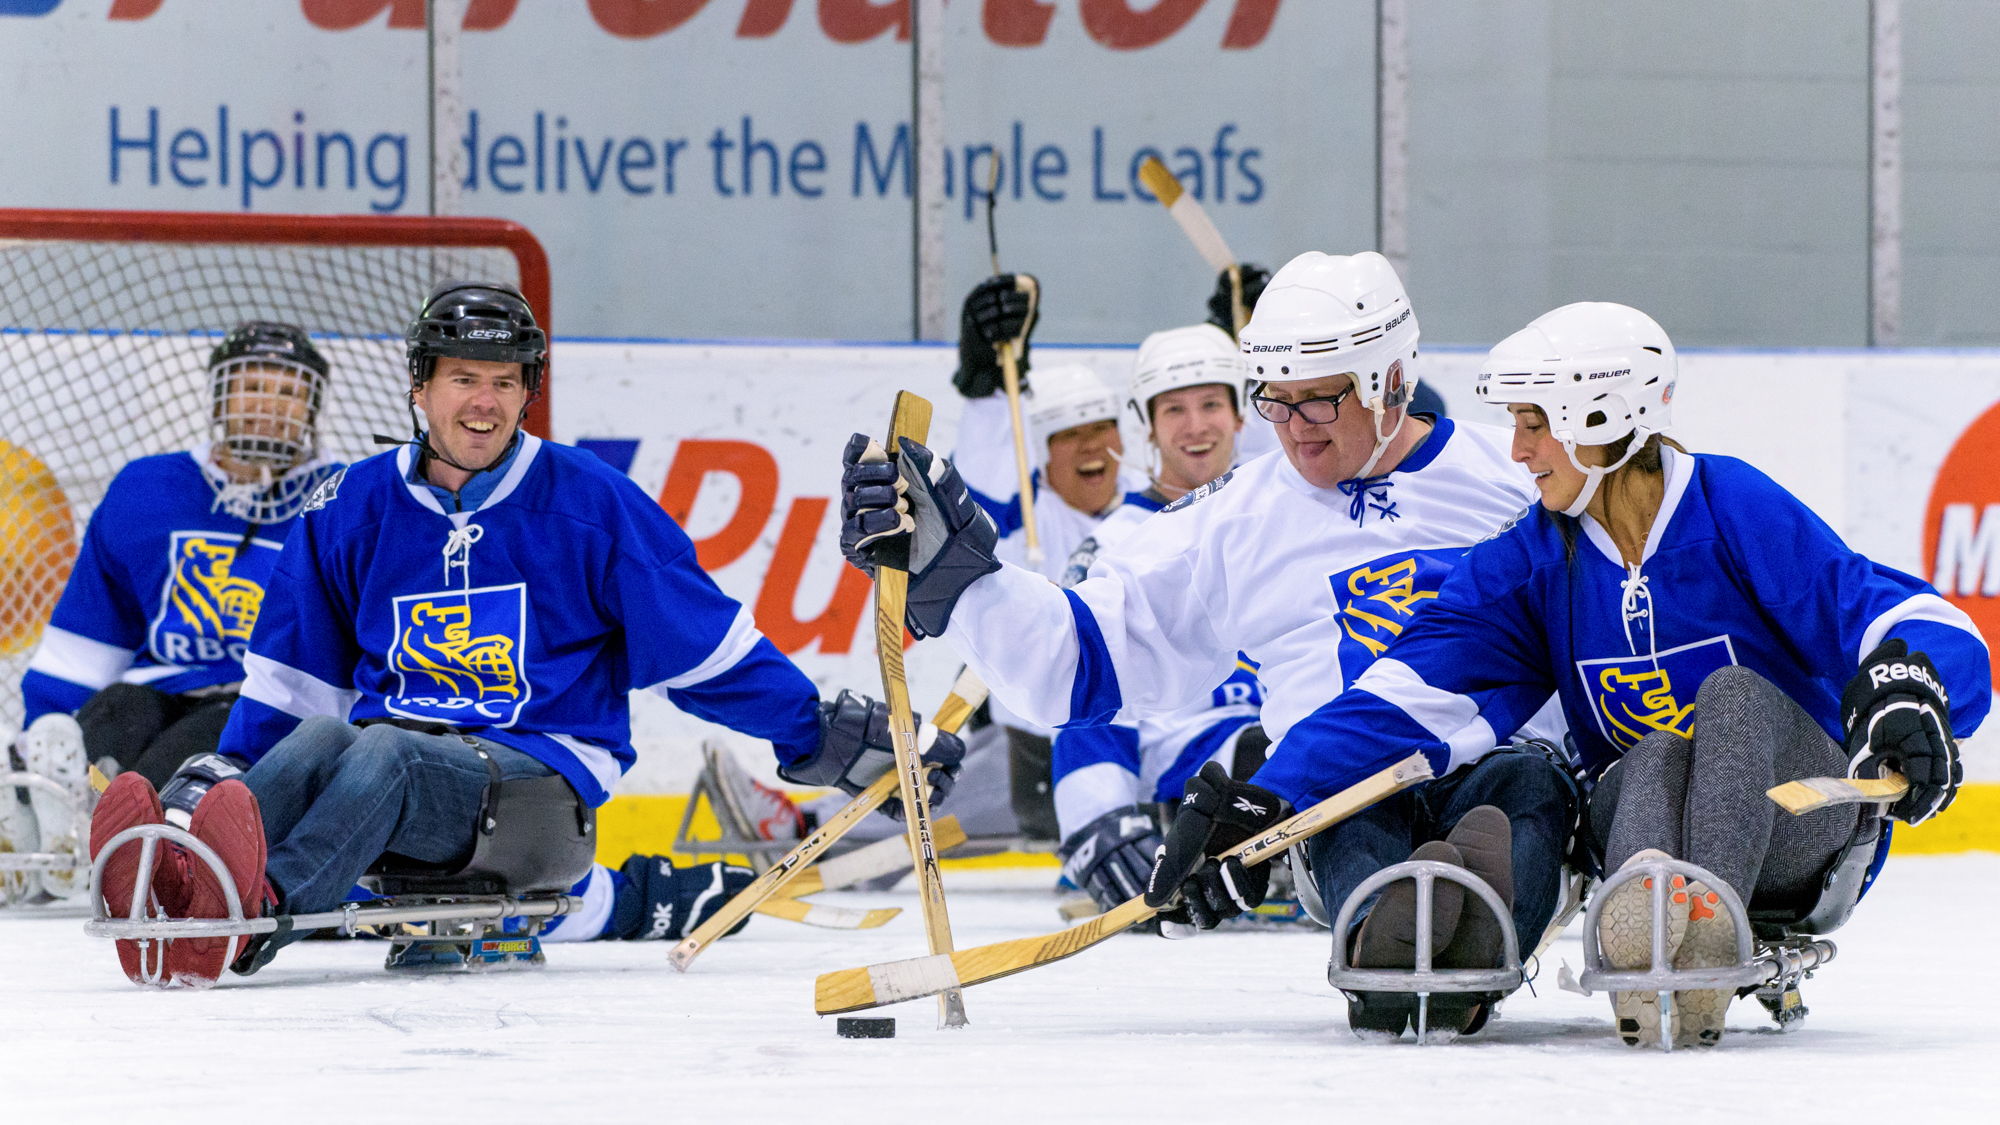 RBC Sledge Hockey Experience